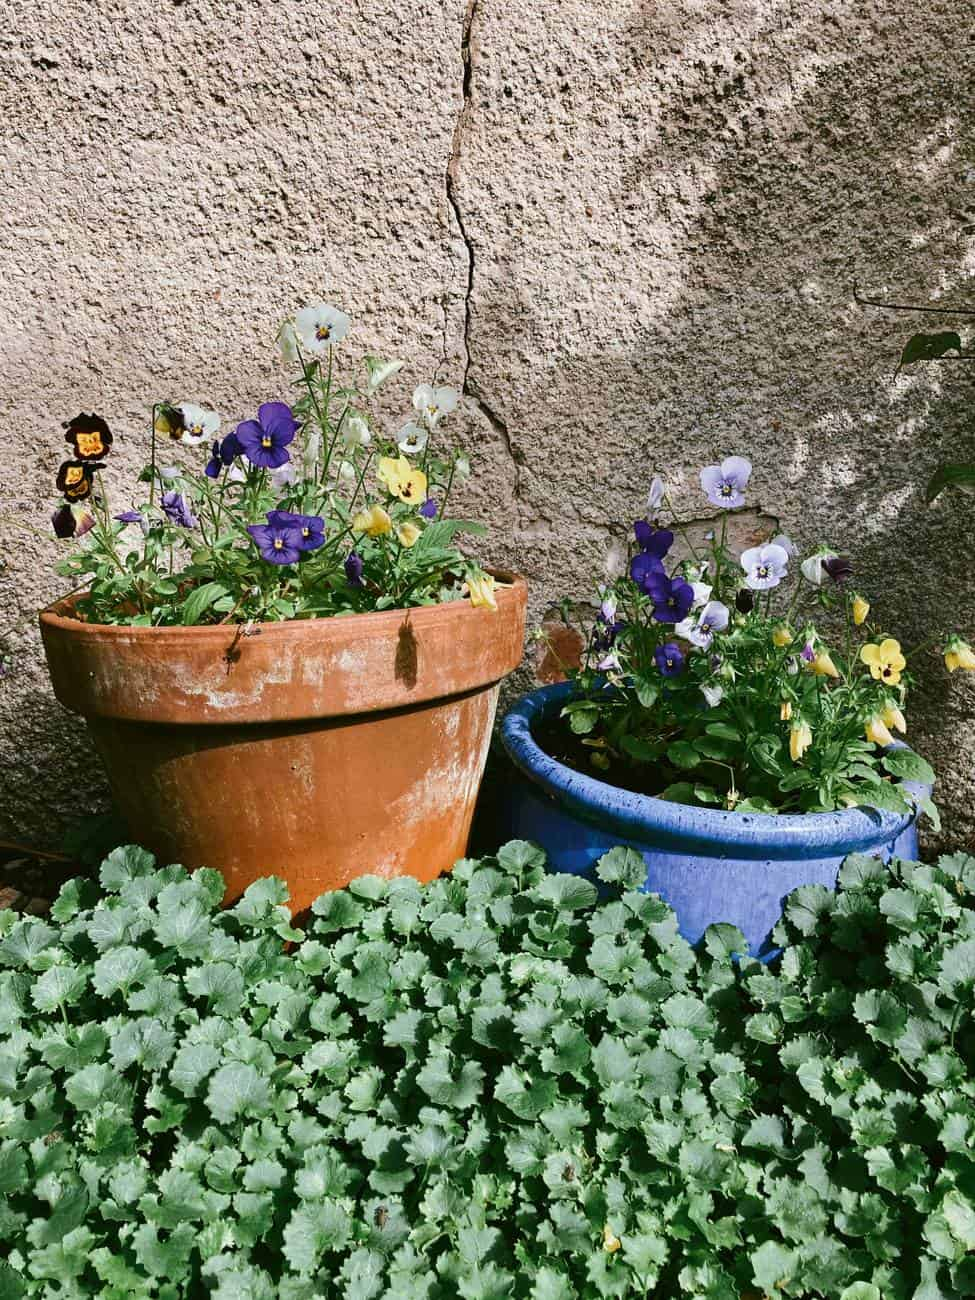 Here are 5 ways for gardening with kids!